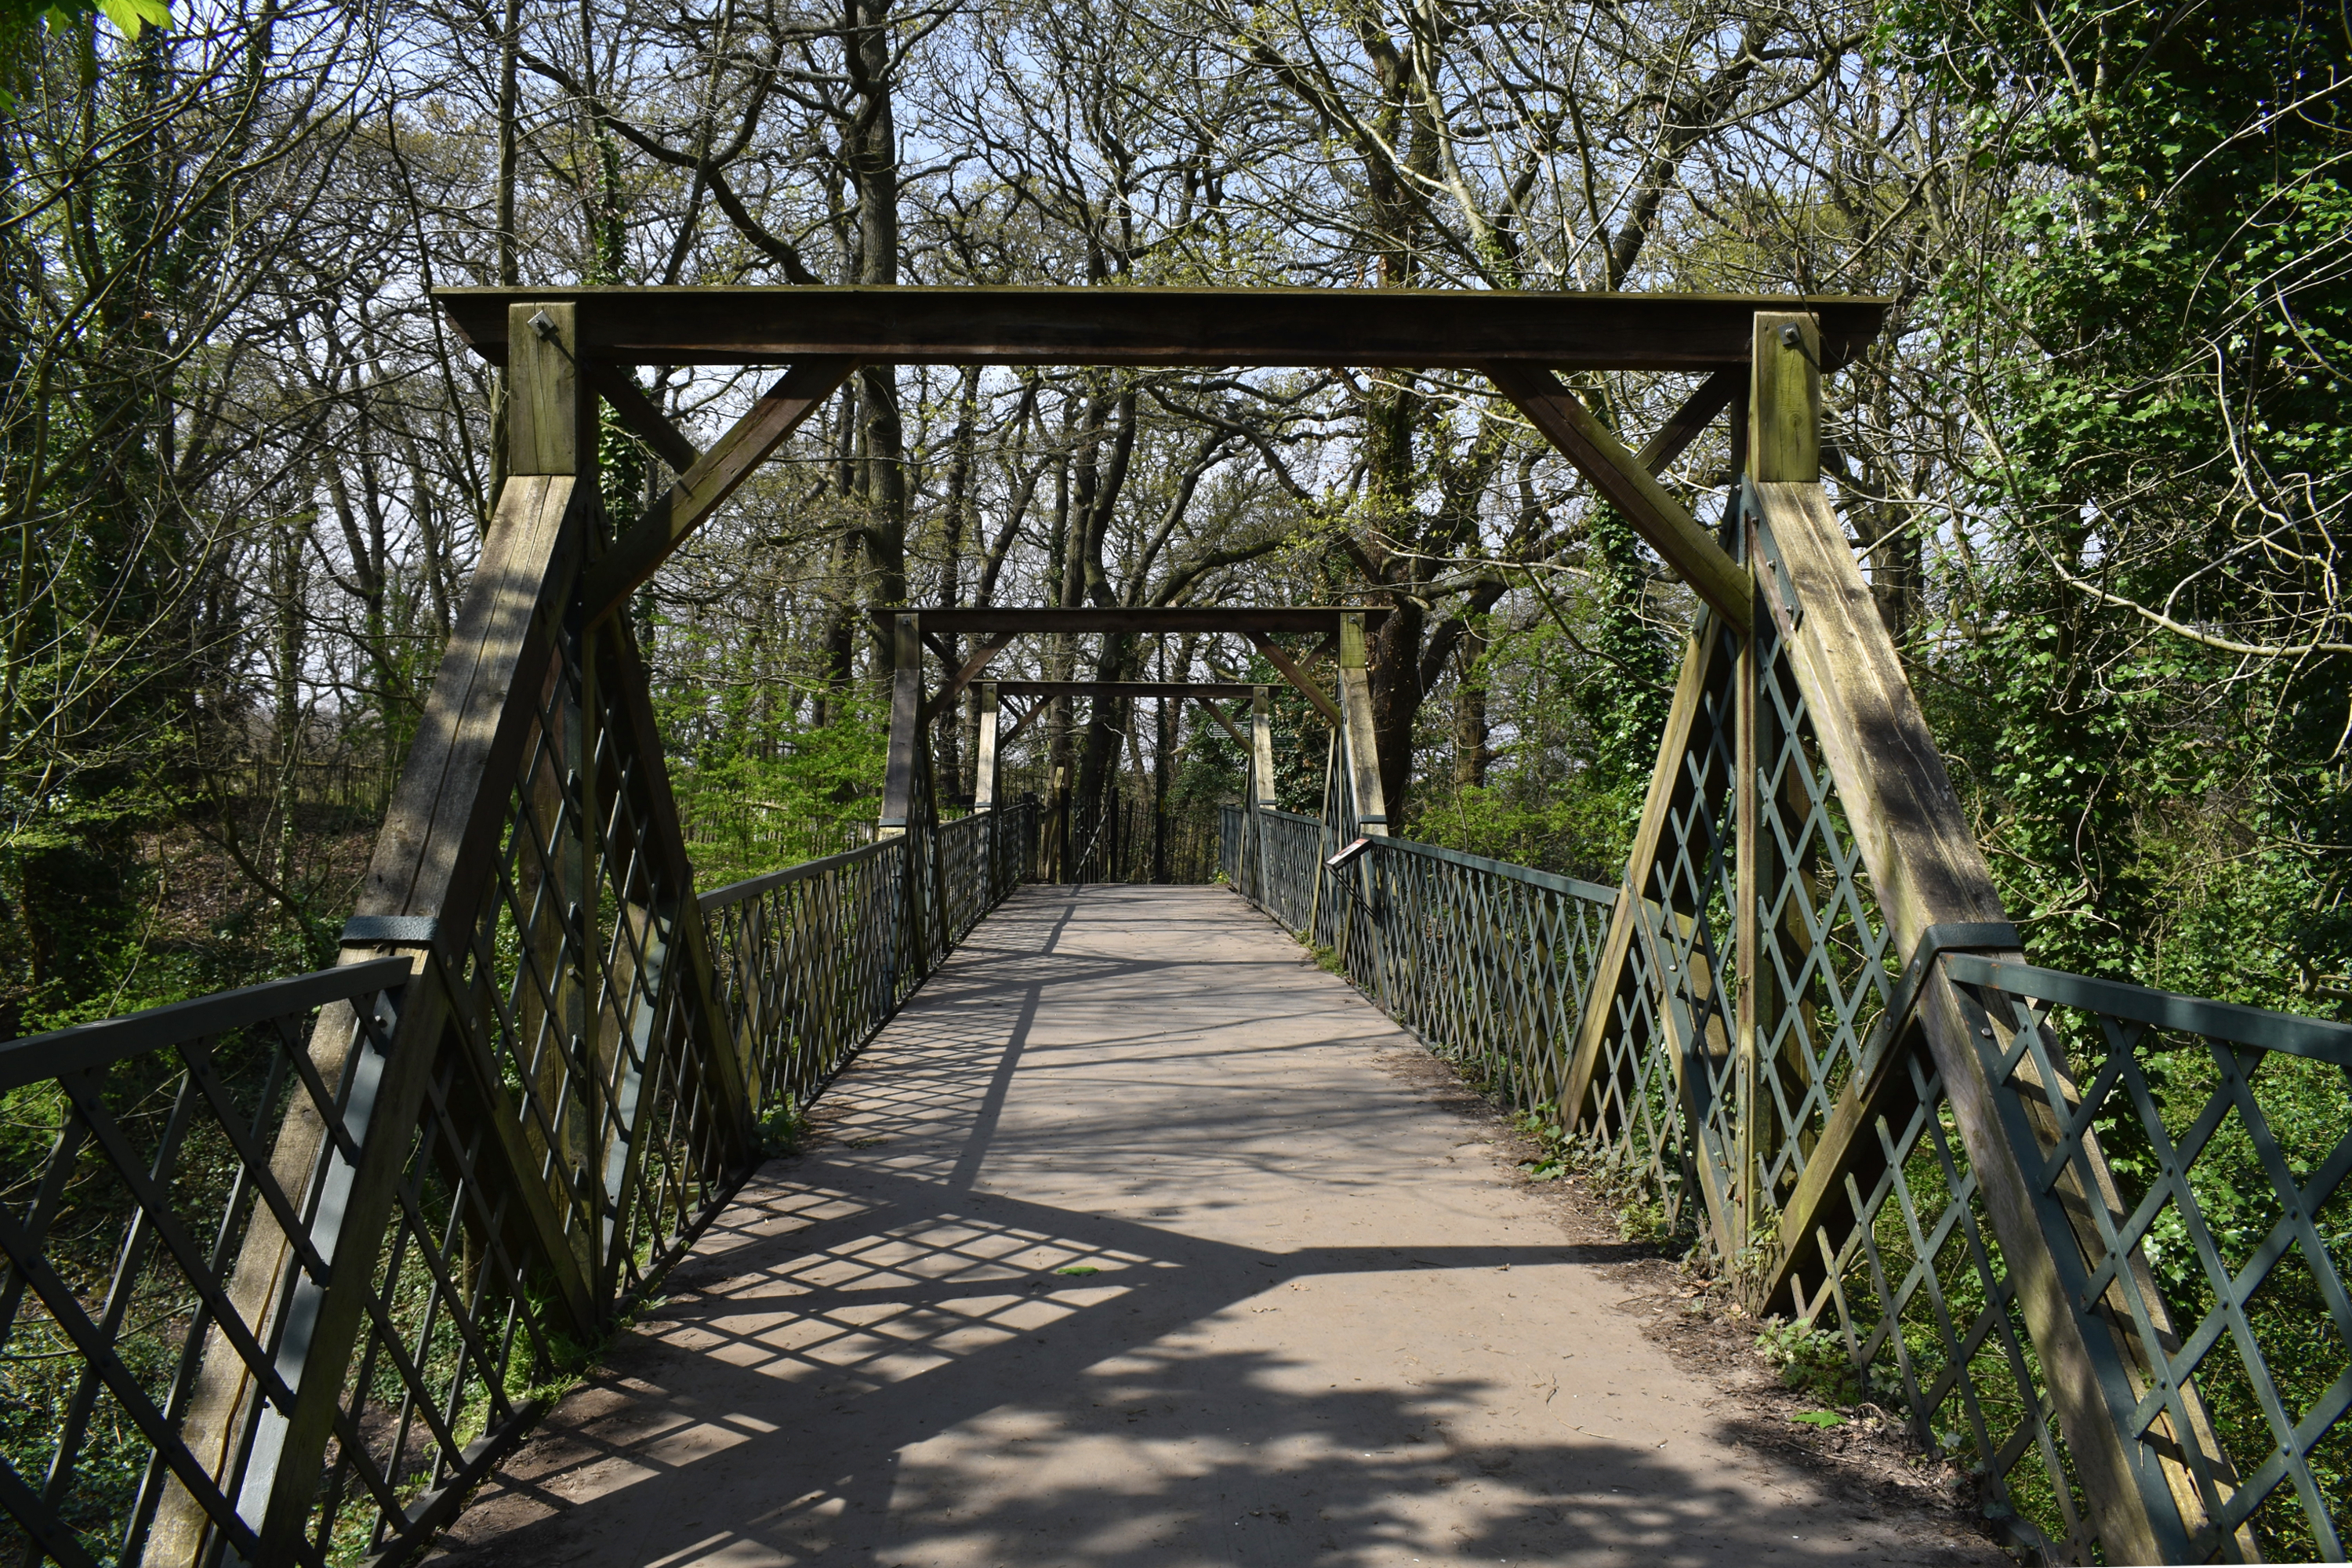 bridge across woodland with trees surrounding and shadows